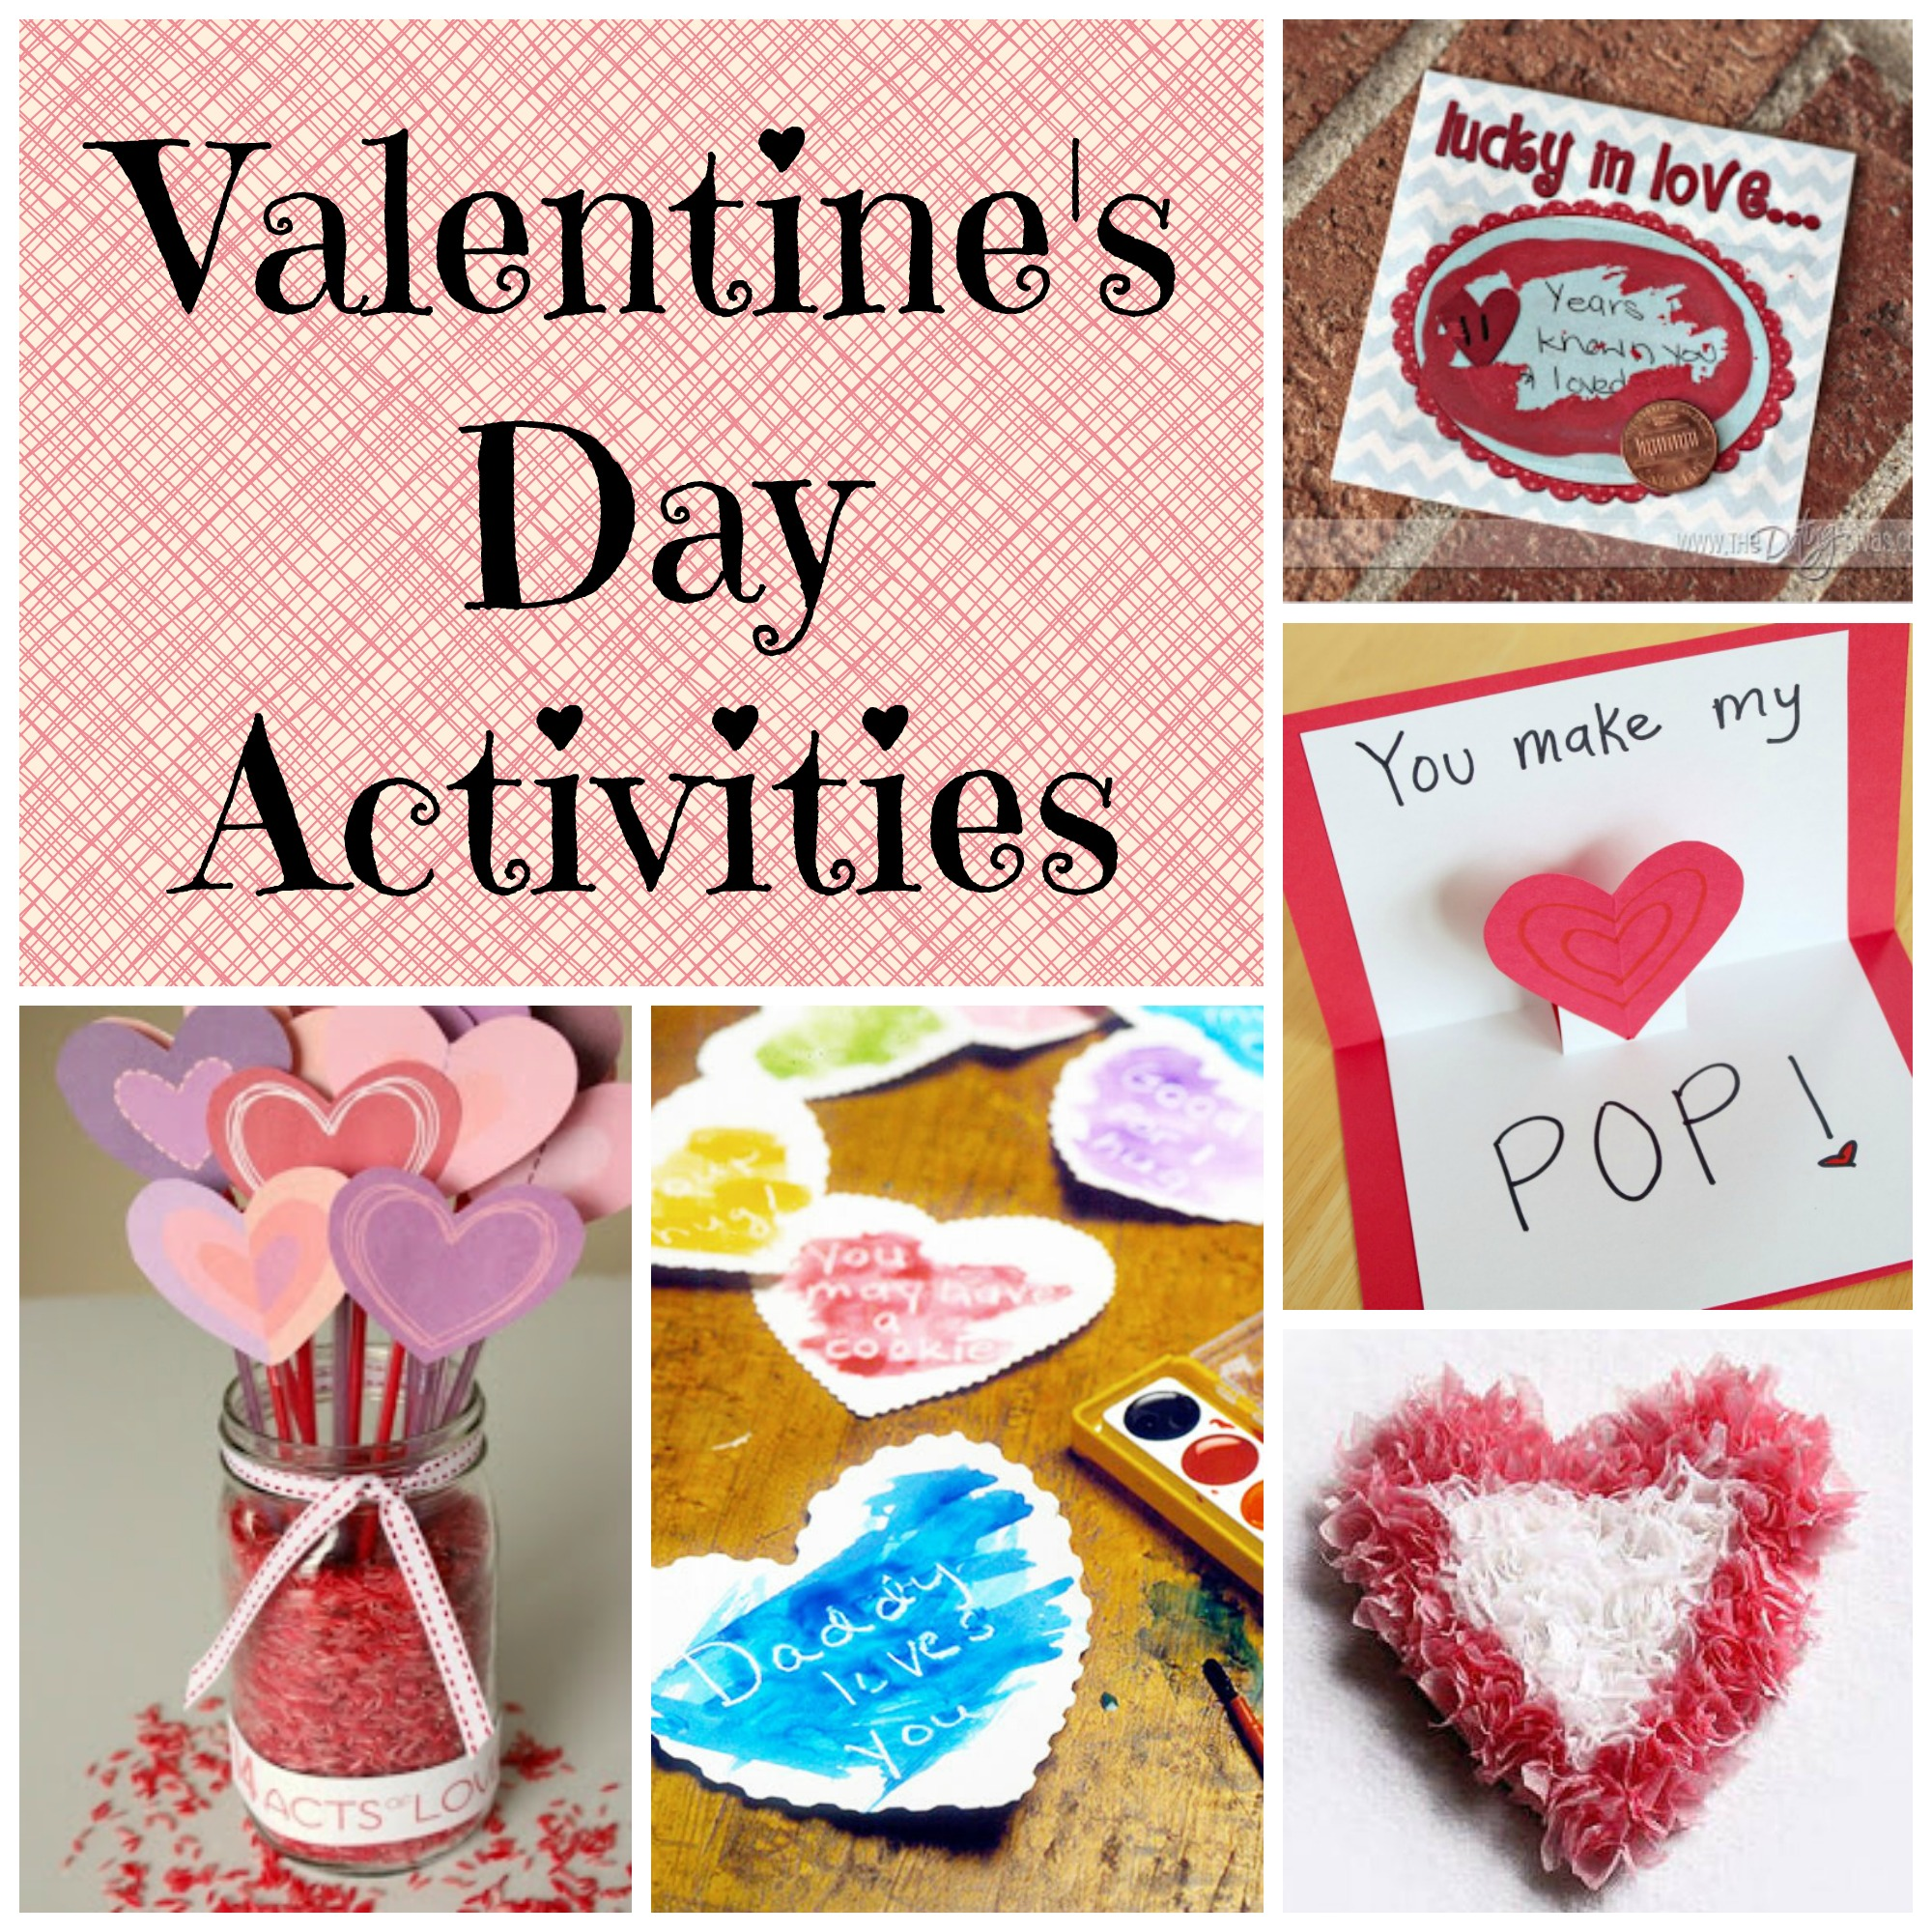 valentine's day activities and ideas - saving centcent, Ideas